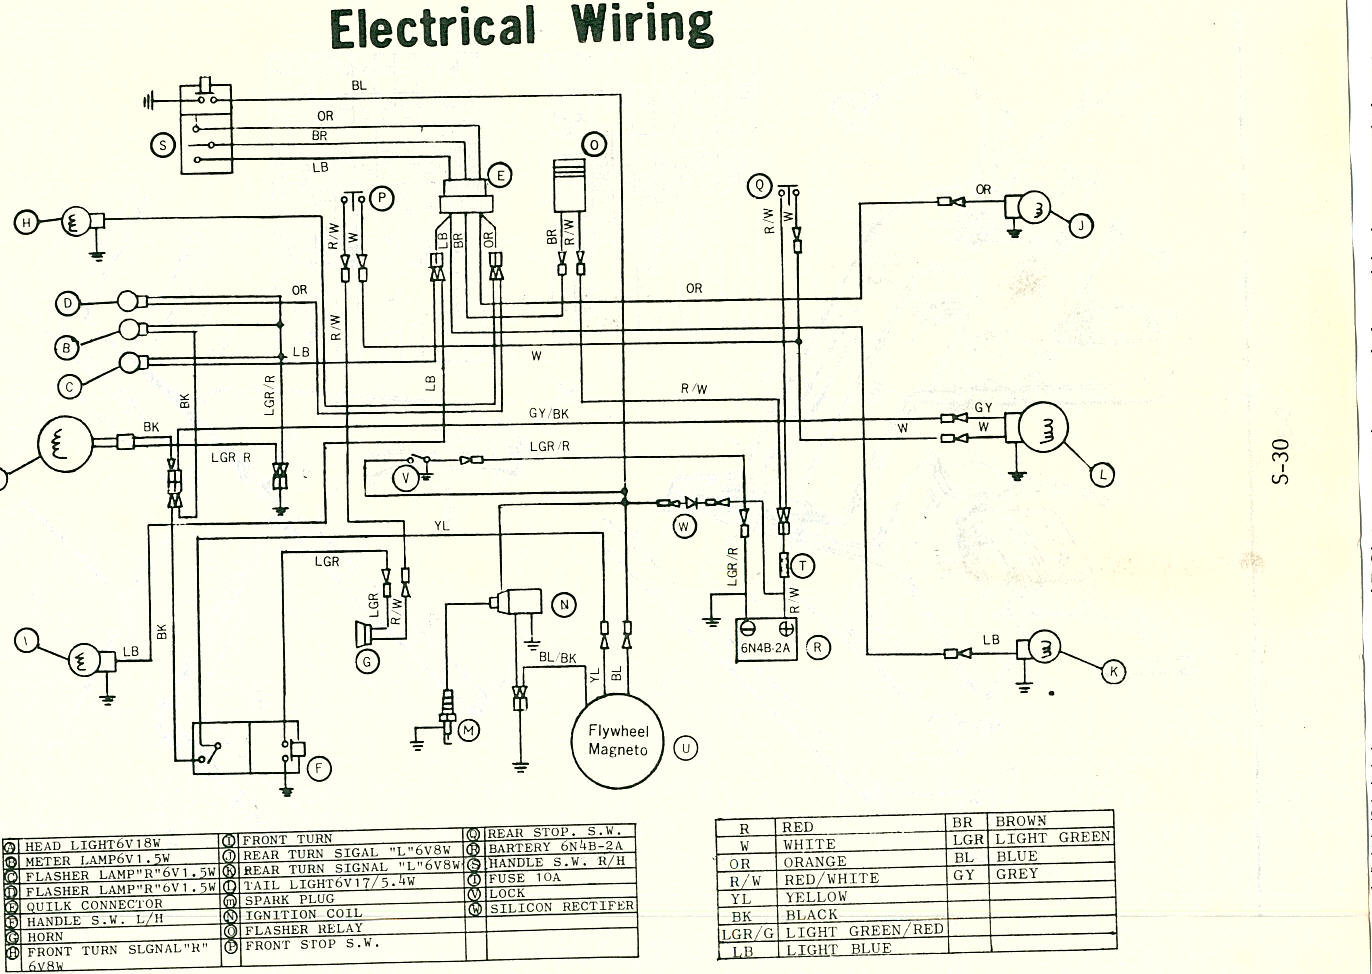 sachs wiring diagram — Moped Army